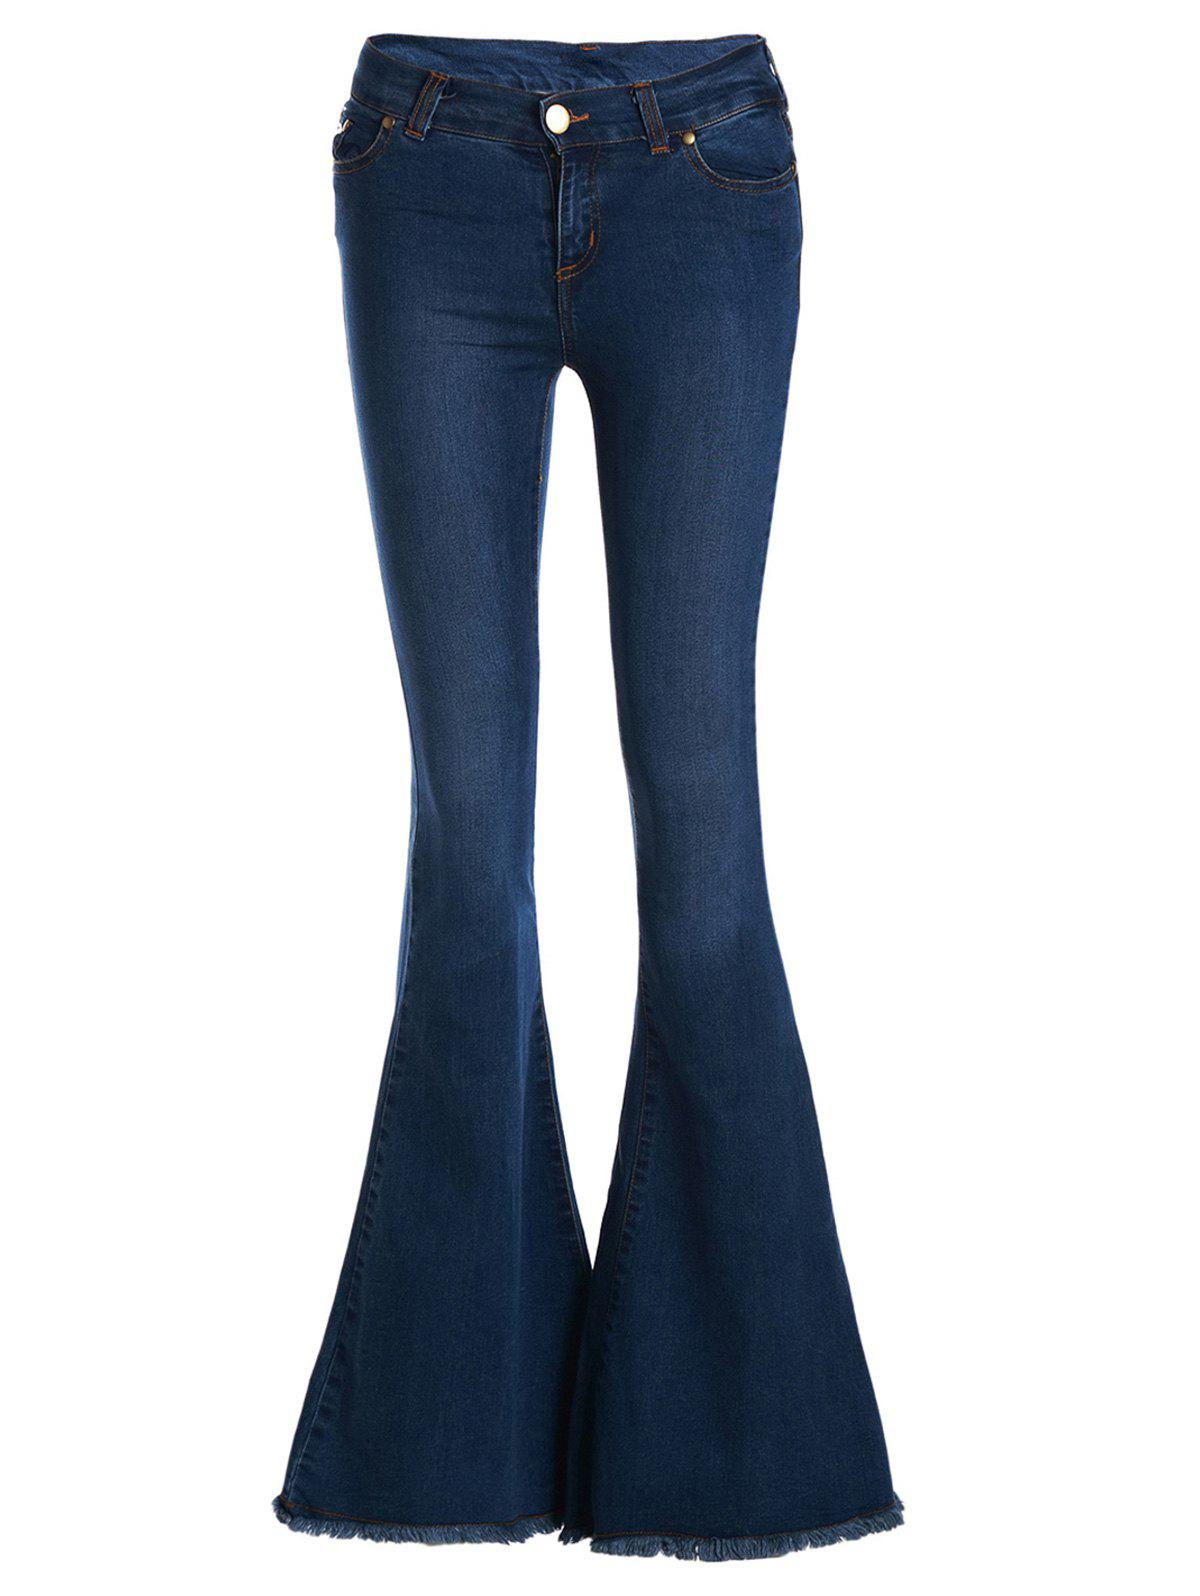 Vintage Low-Waisted Loose-Fitting Women's Bell Bottom Jeans, DEEP ...